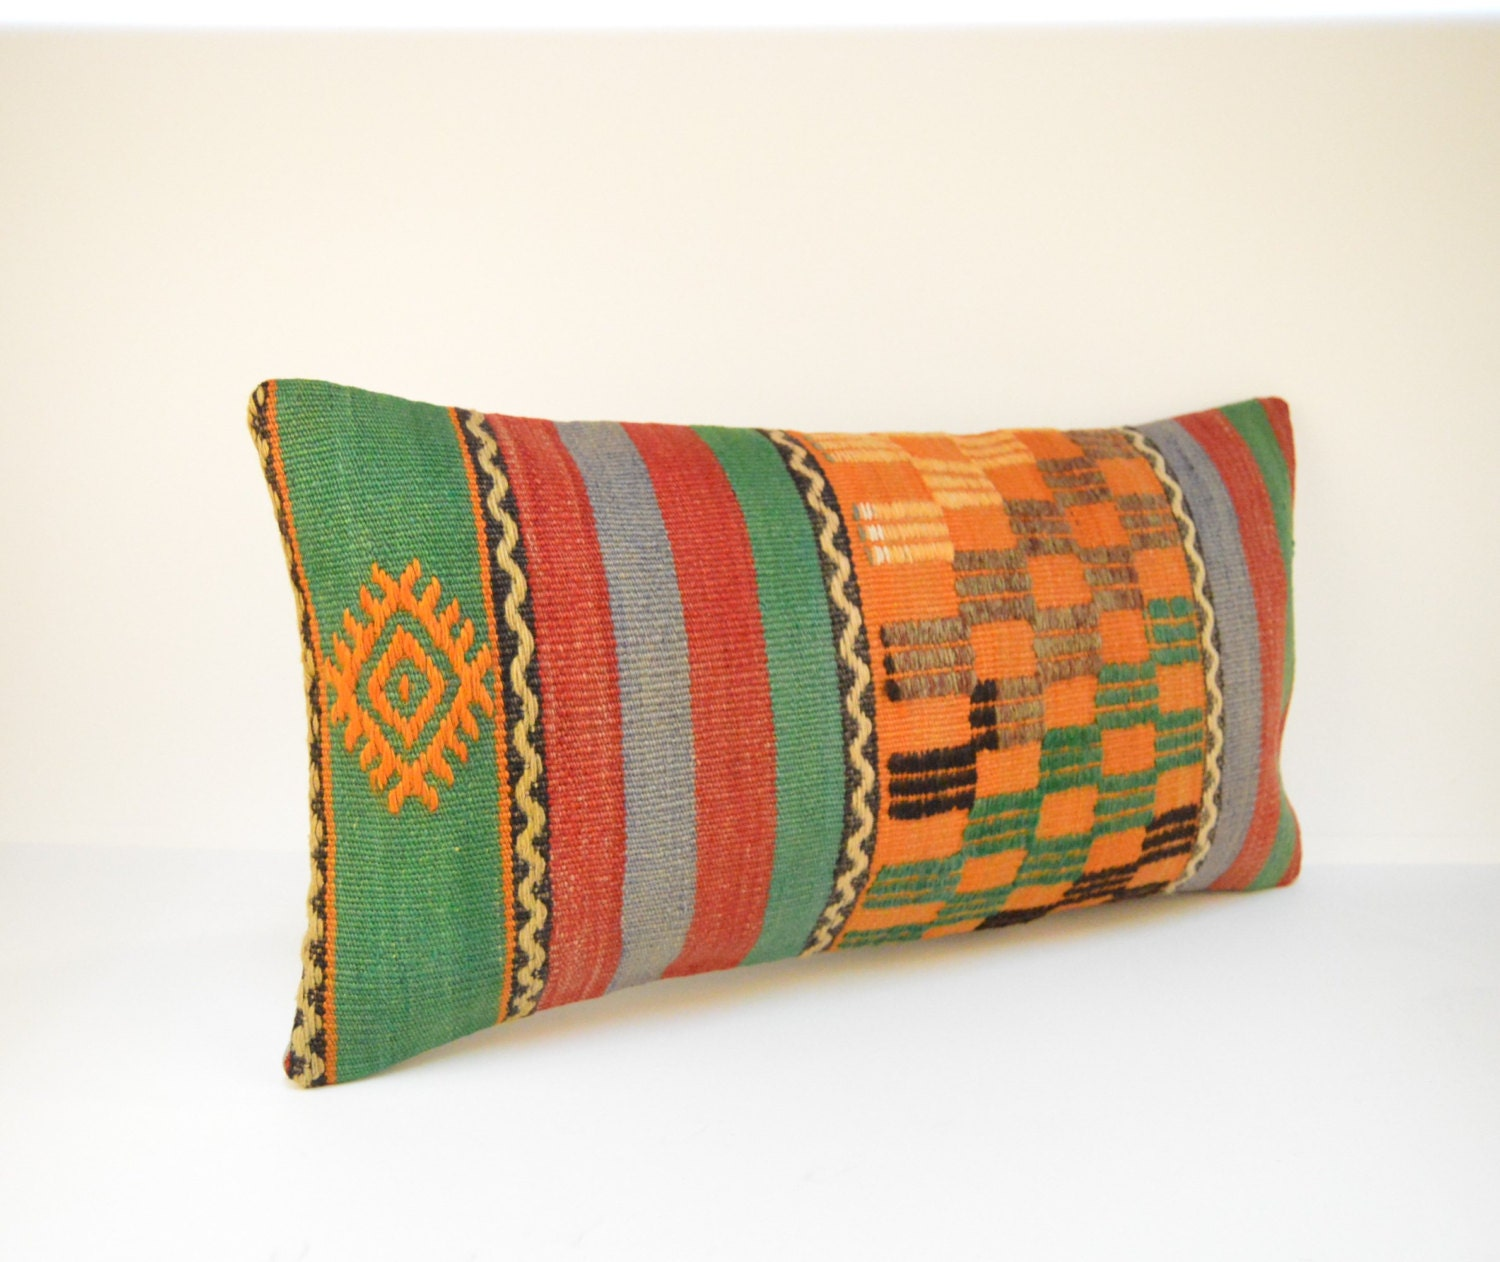 Decorative Pillows Kilim : Kilim pillow KP1903 Decorative Pillows Designer Pillows